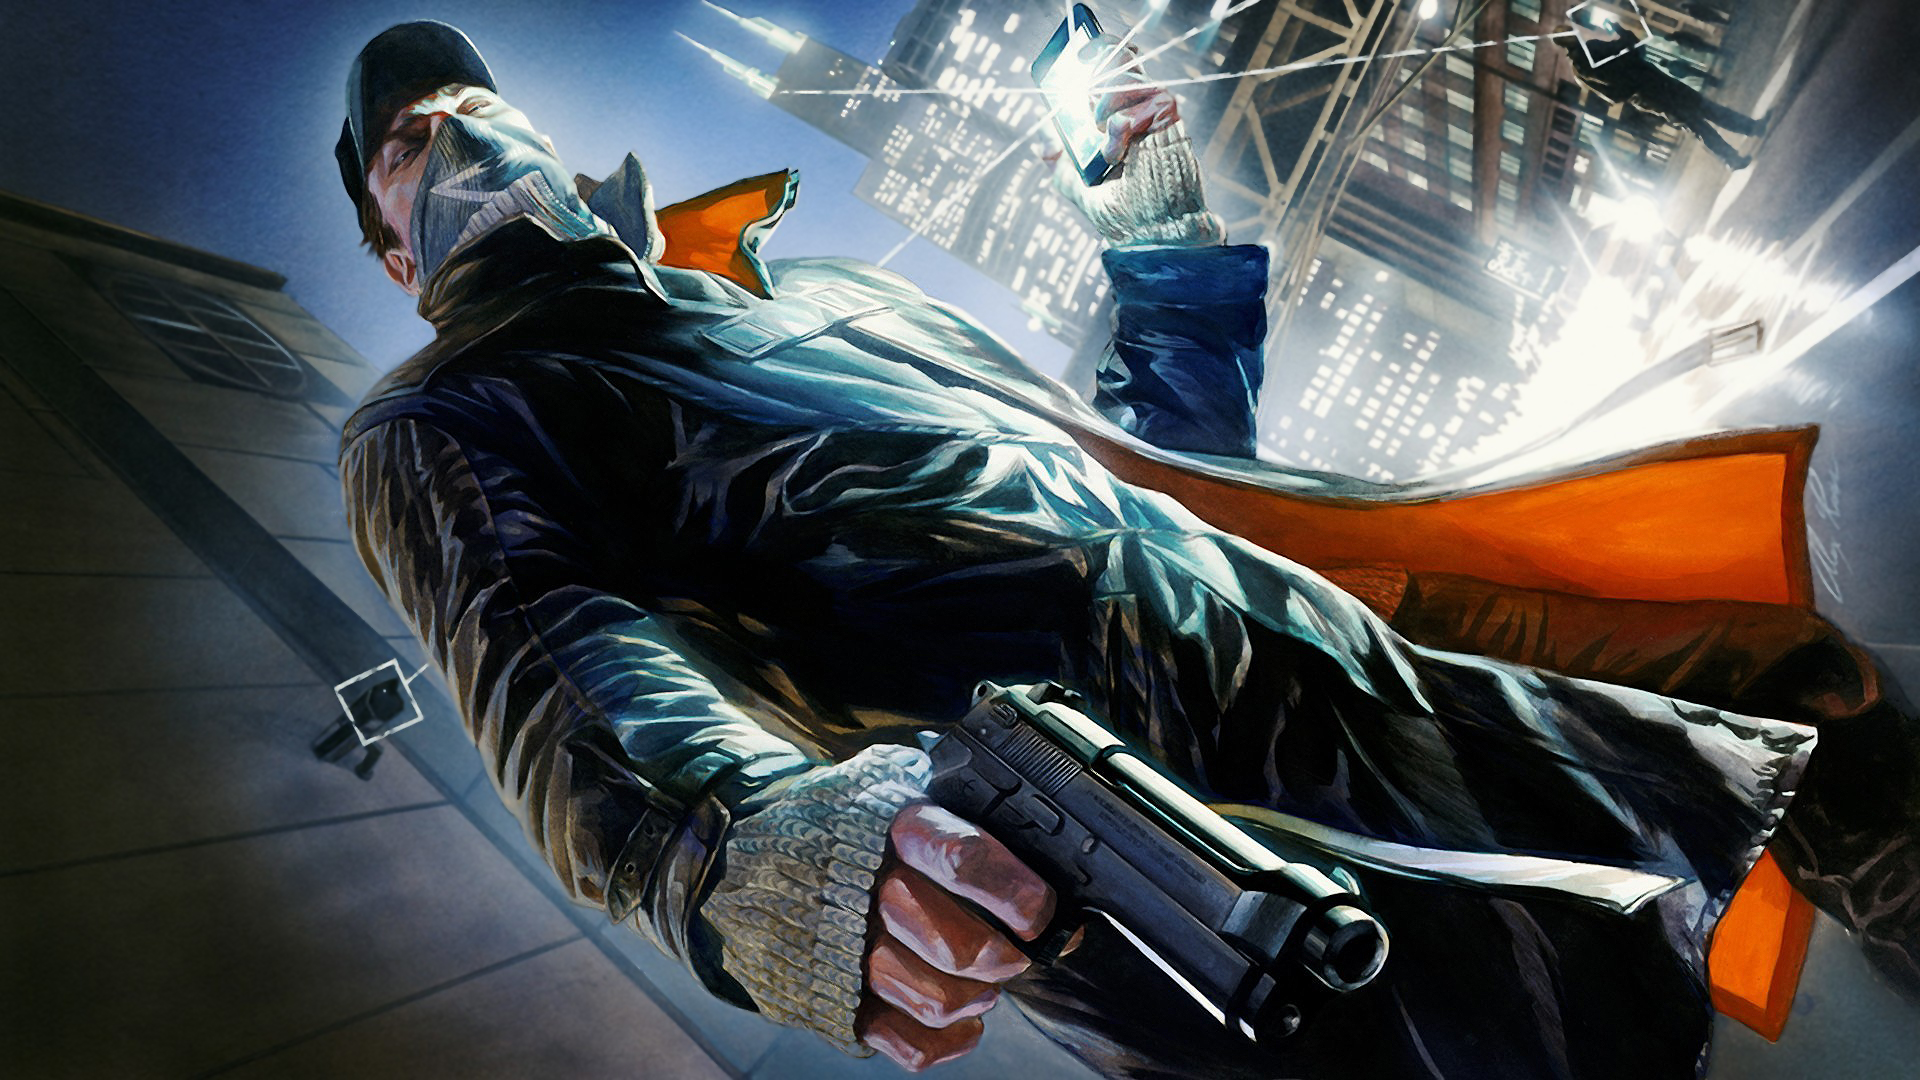 Watch-Dogs-art